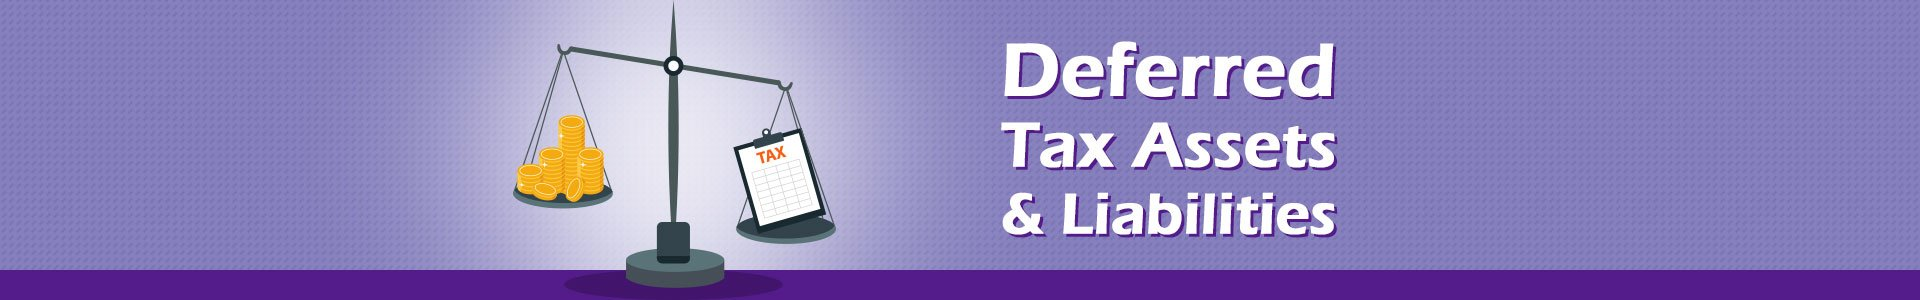 deferred tax assets and liabilities